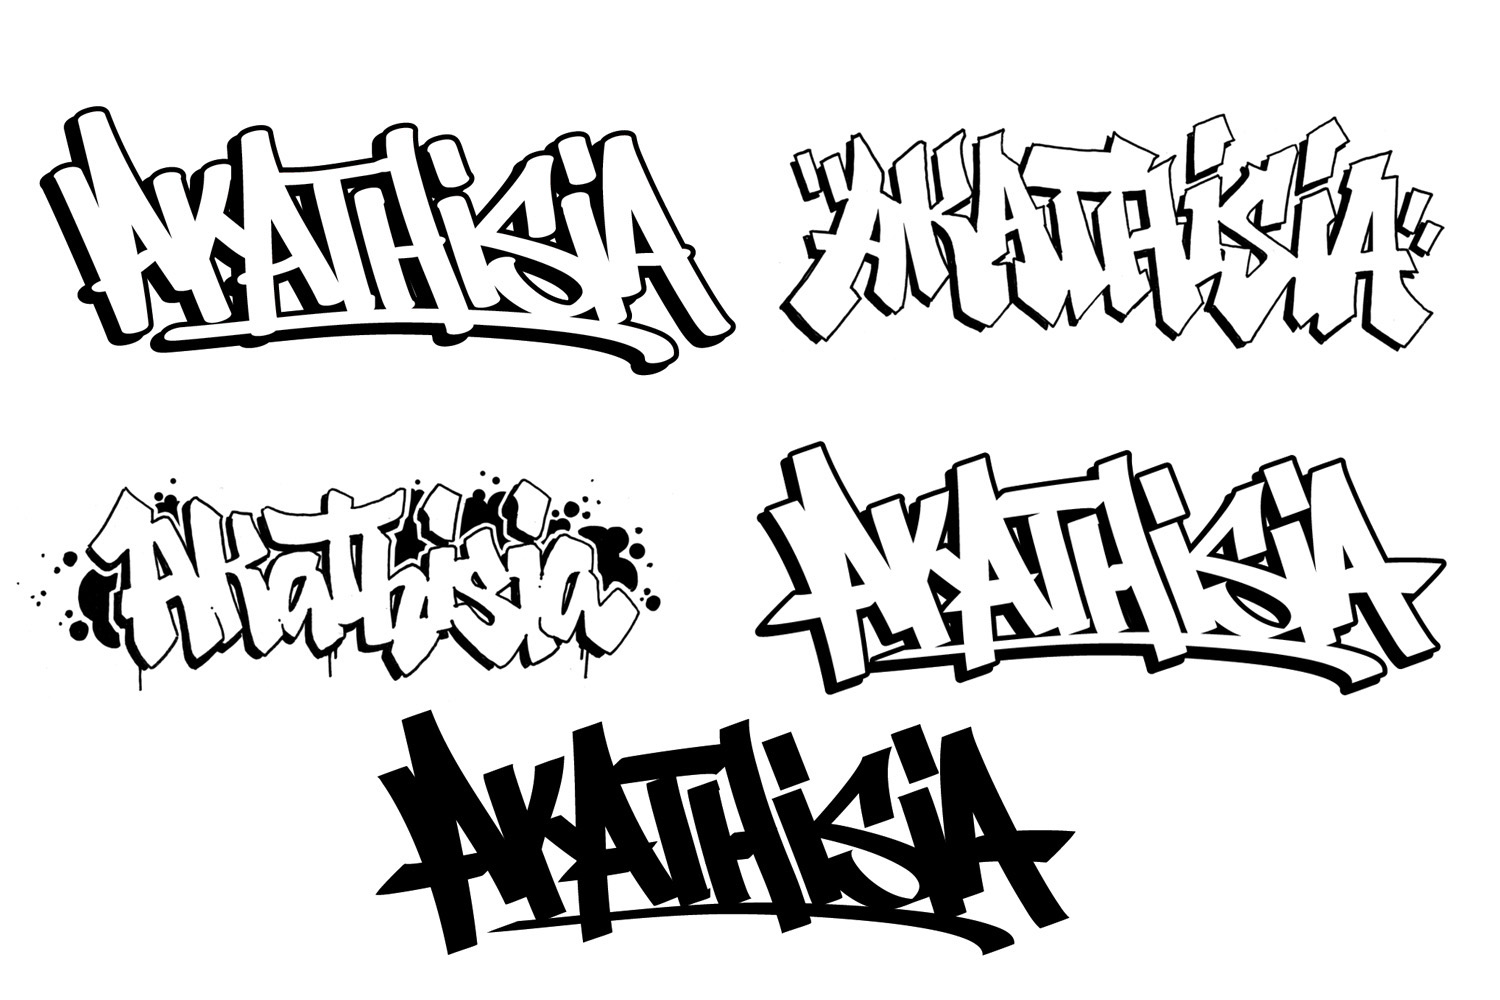 Graffiti Lettering Design